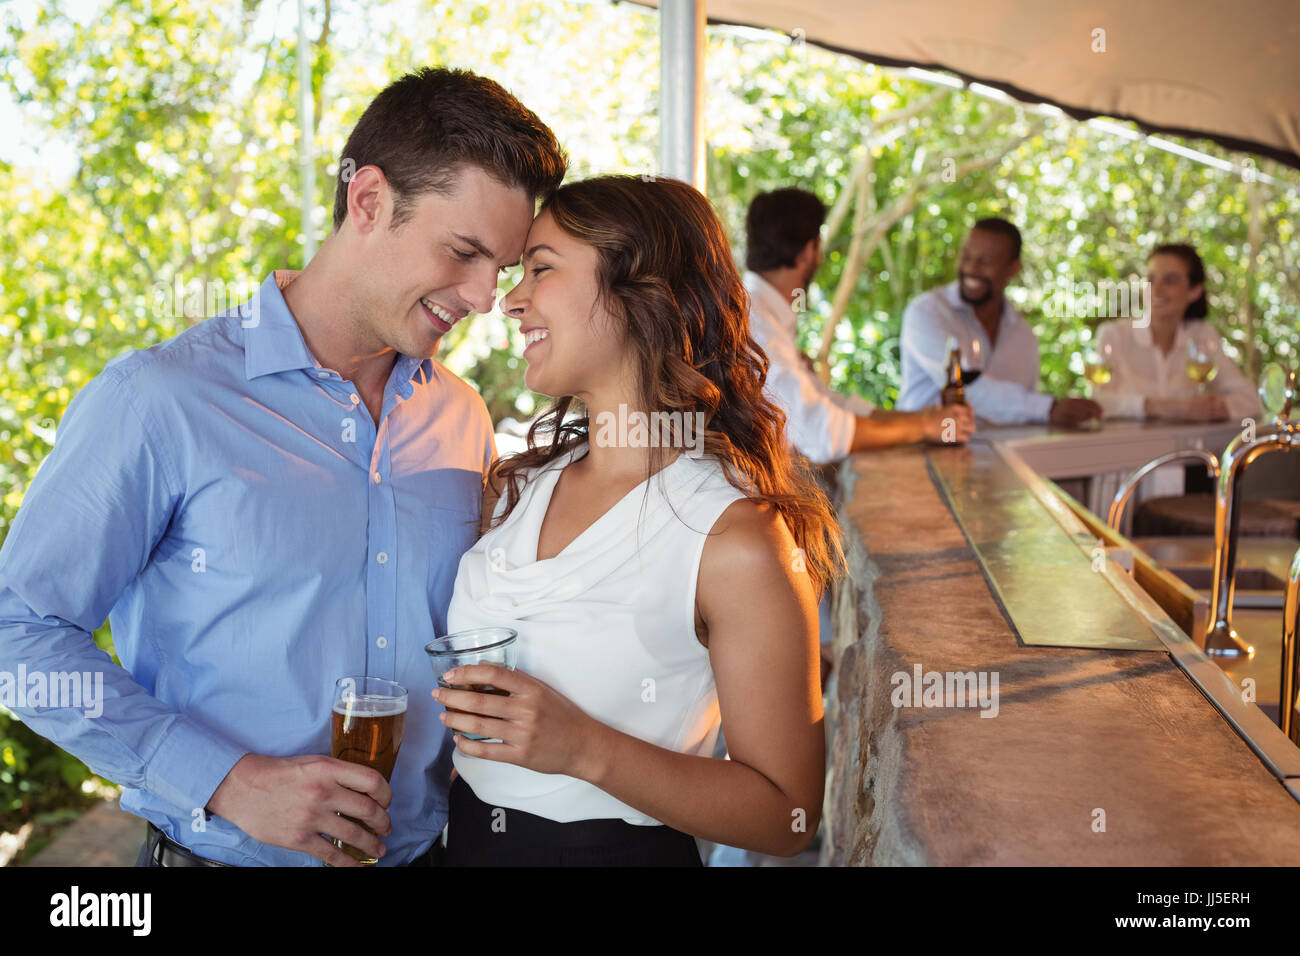 Romantic couple having a glass of beer at counter in restaurant - Stock Image